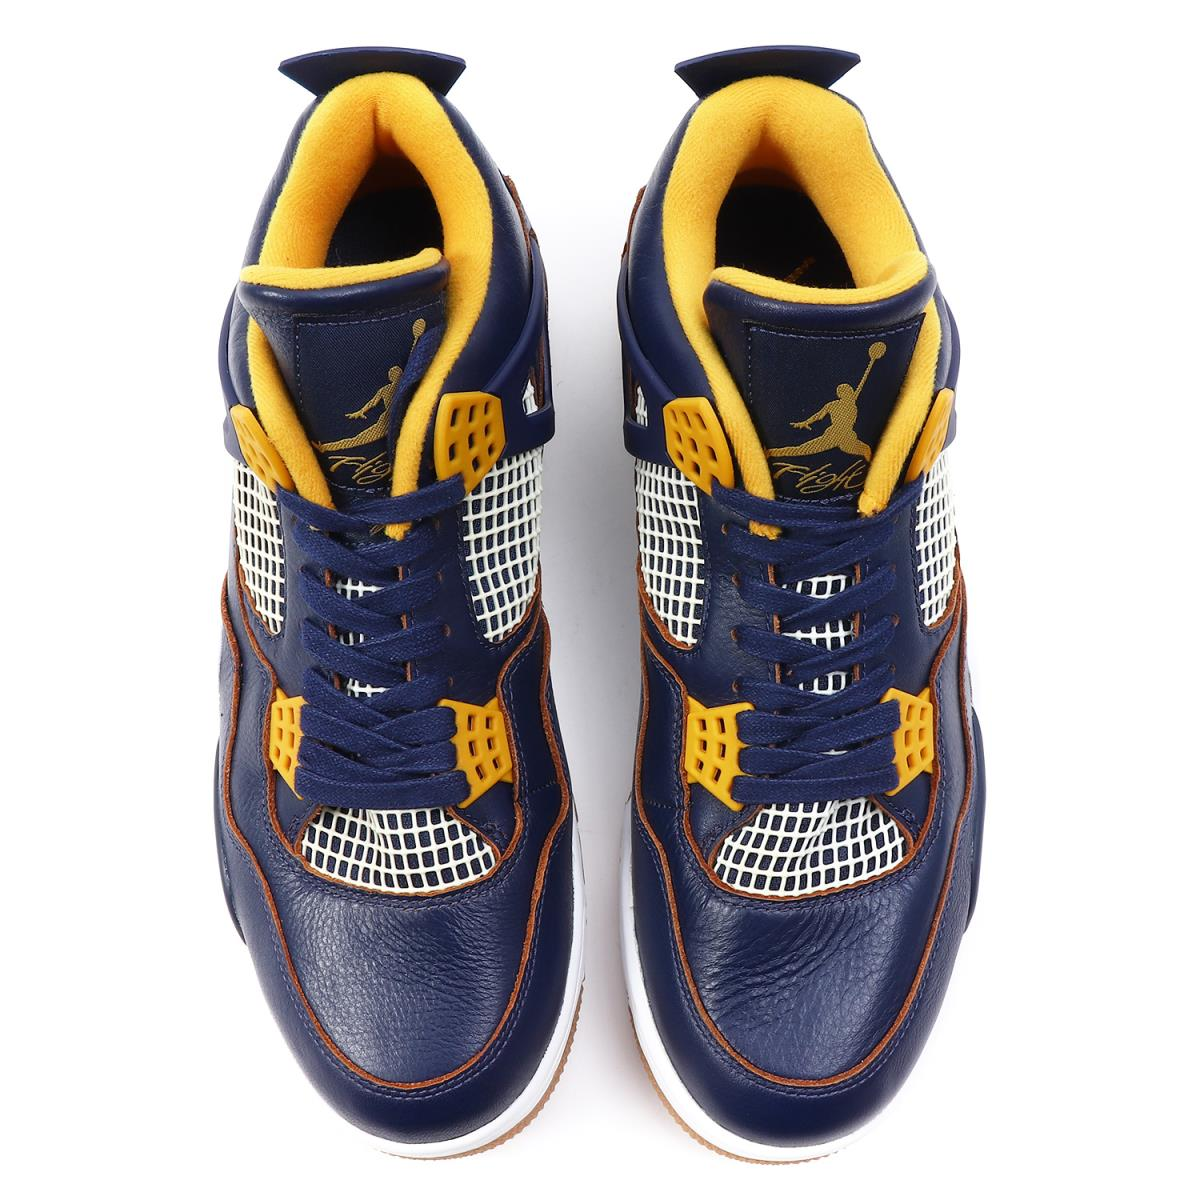 00db962a321e5e BEEGLE by Boo-Bee  NIKE (Nike) AIR JORDAN 4 RETRO DUNK FROM ABOVE ...